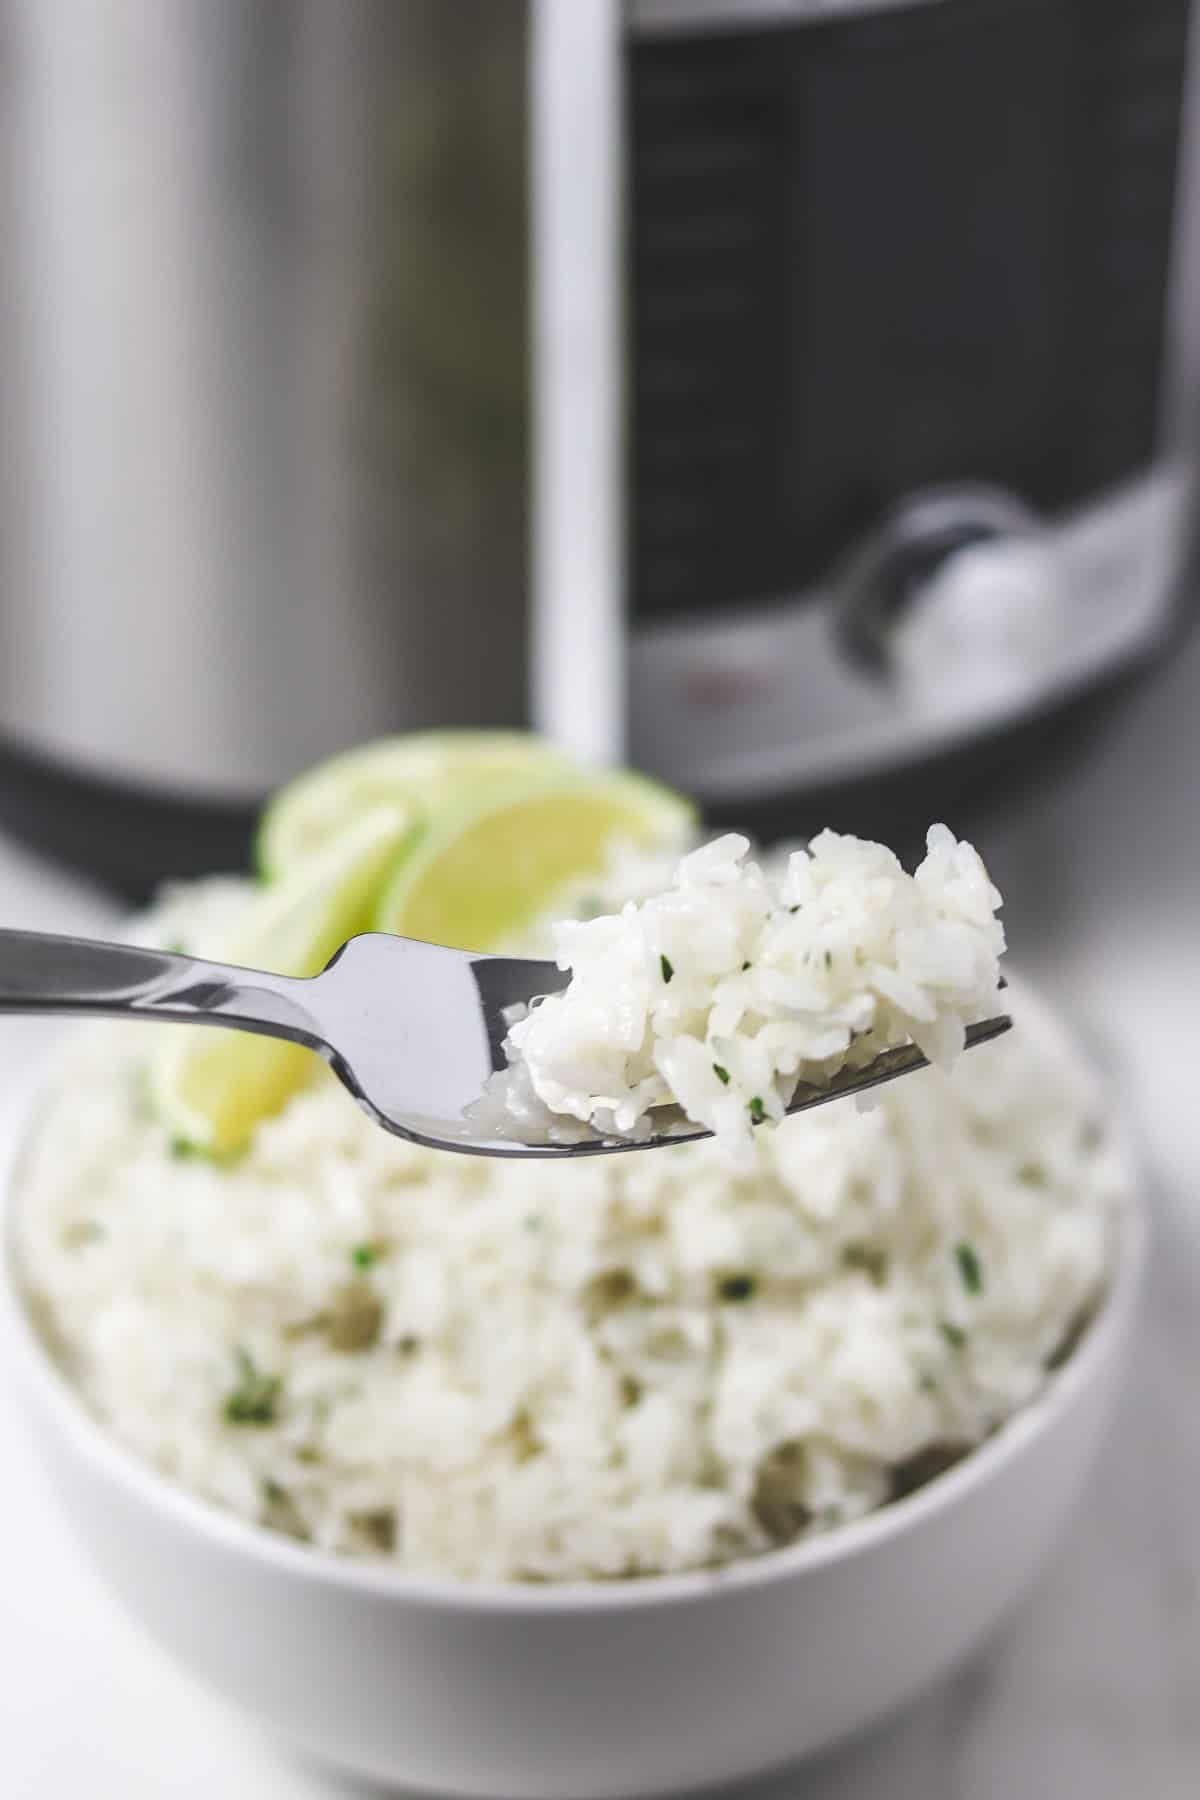 bite of cilantro lime rice on fork in front of bowl of rice and instant pot